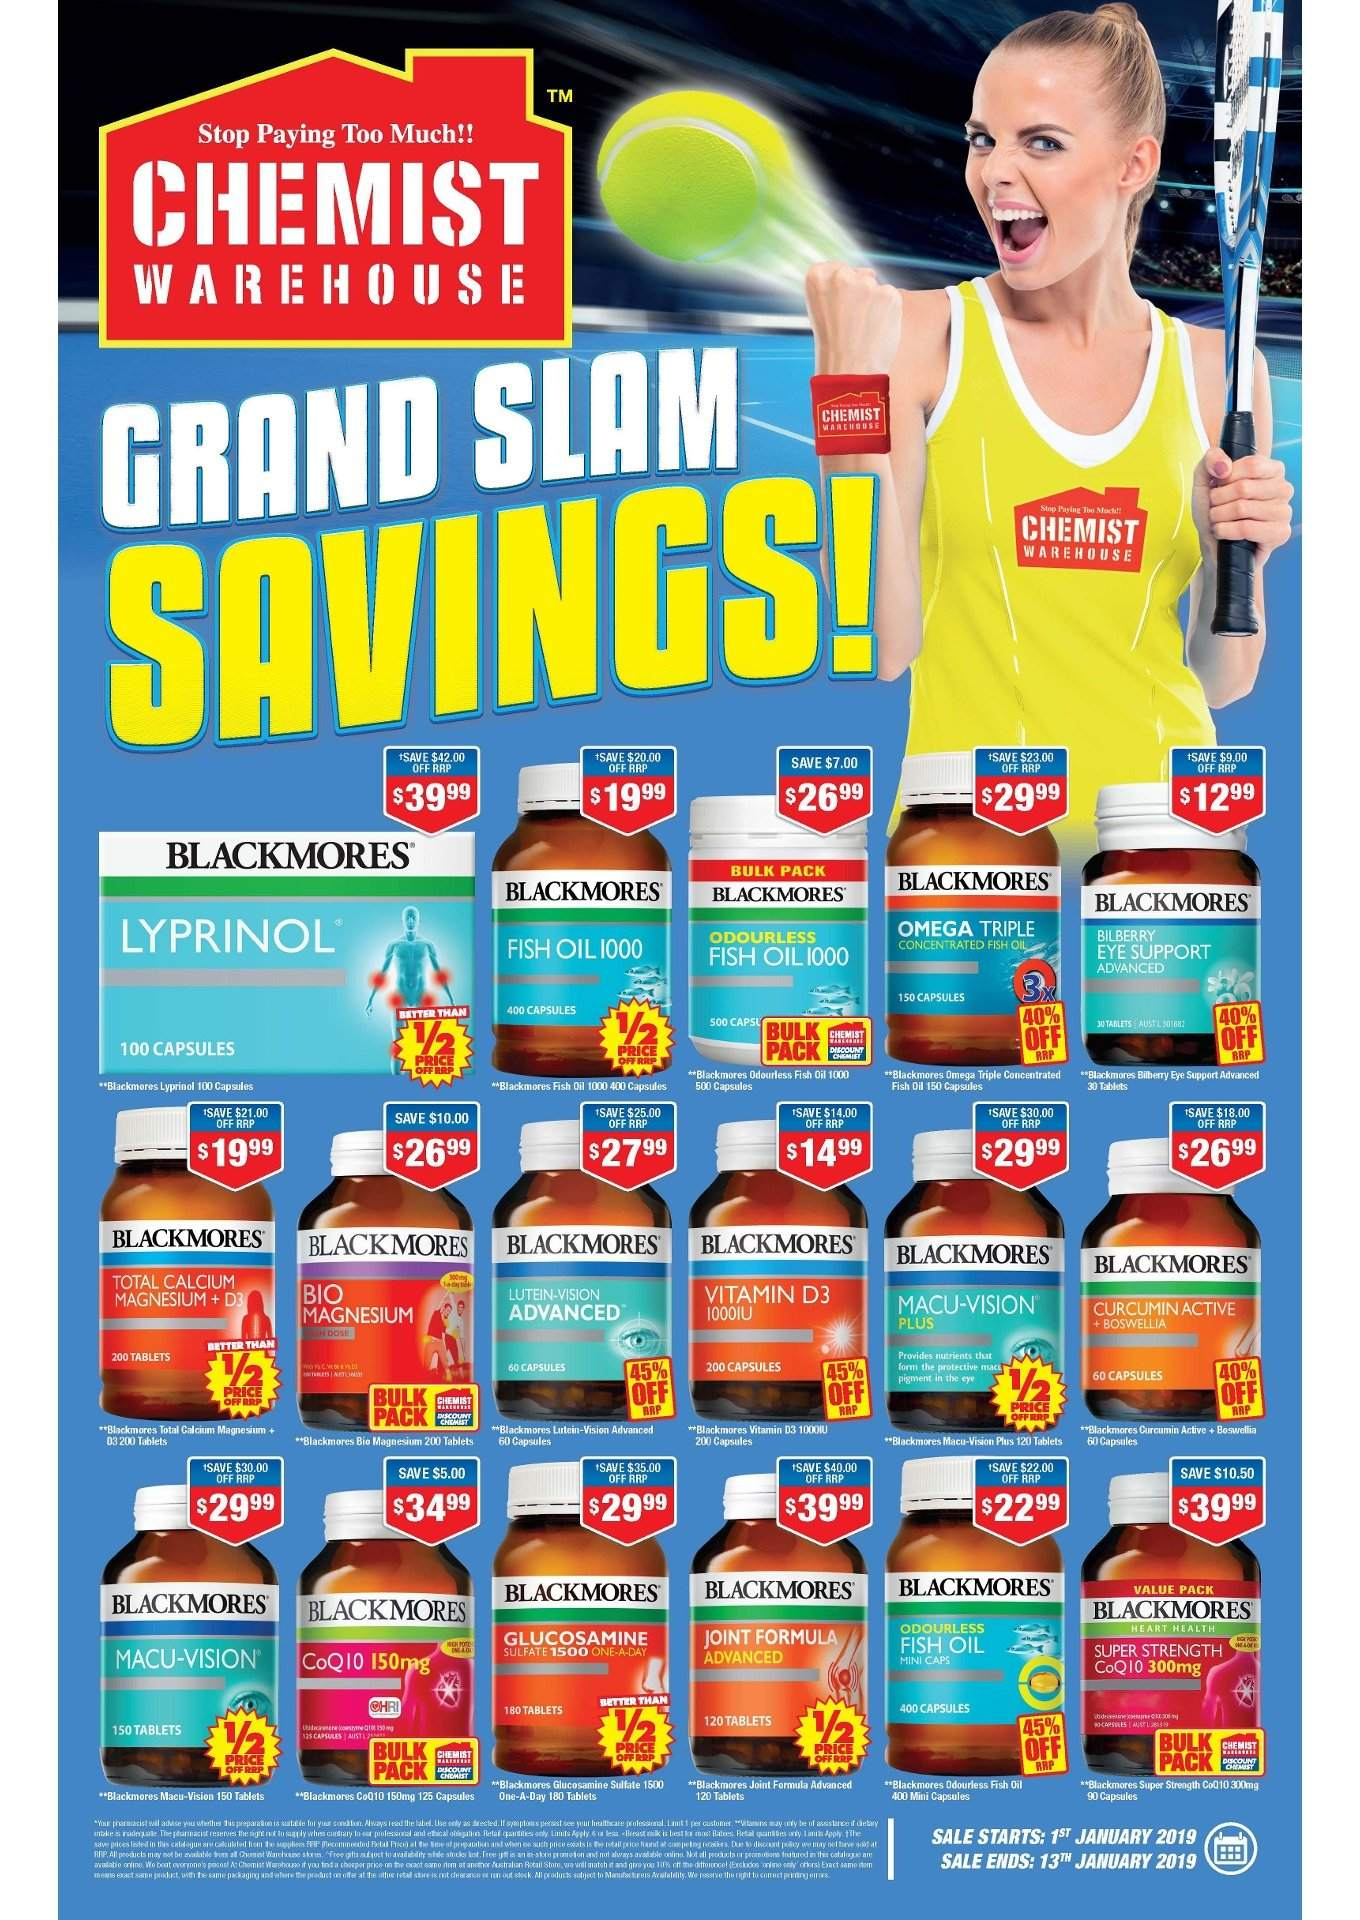 Chemist Warehouse Catalogue - 1.1.2019 - 13.1.2019 - Sales products - calcium, capsules, d3, fish oil, glucosamine, grand, magnesium. Page 1.